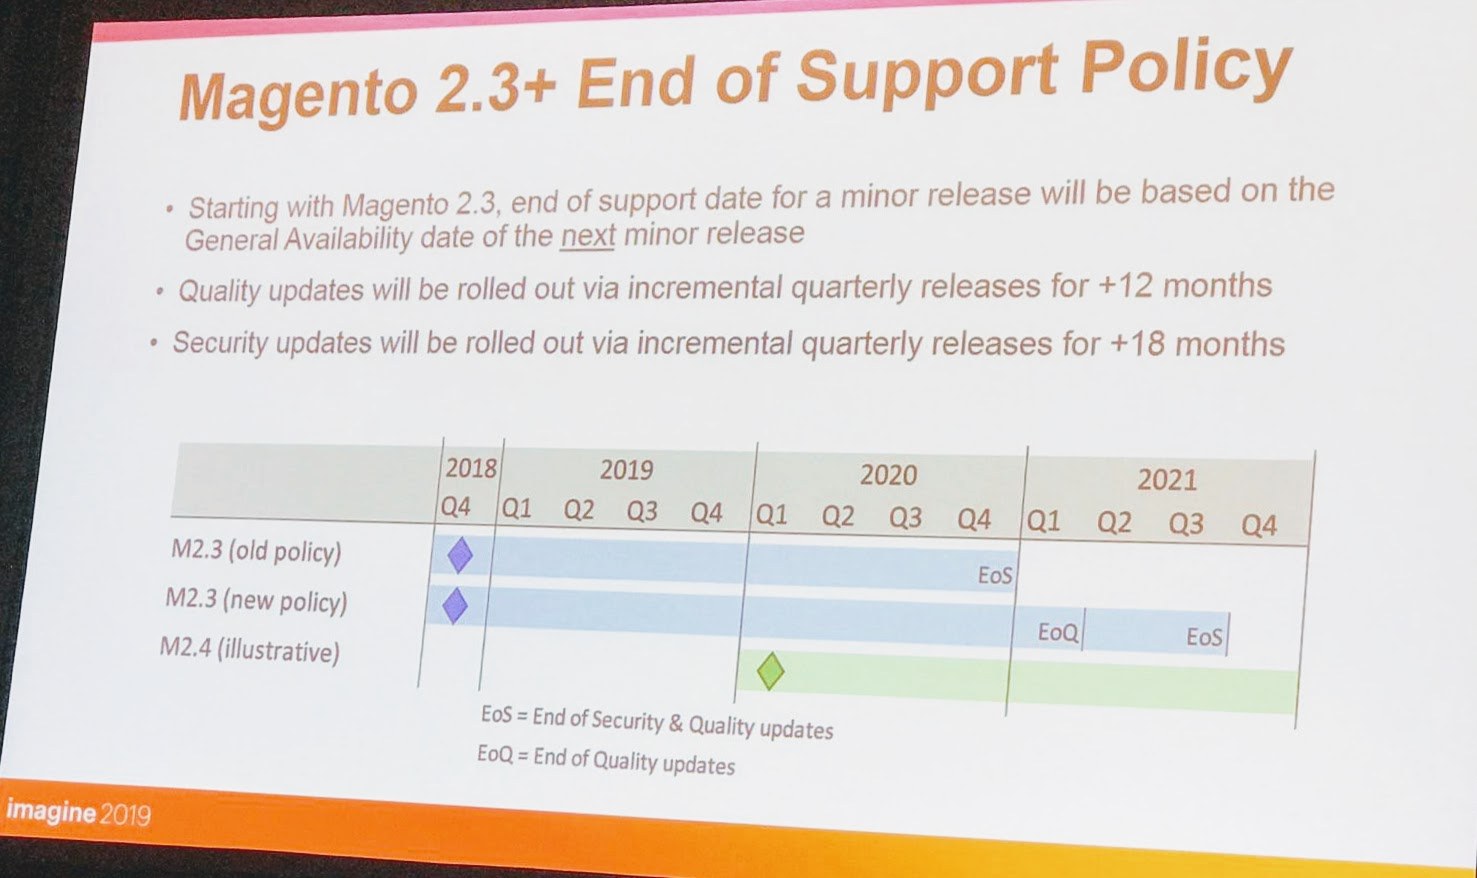 Magento 2.3.2 End of Support Policy